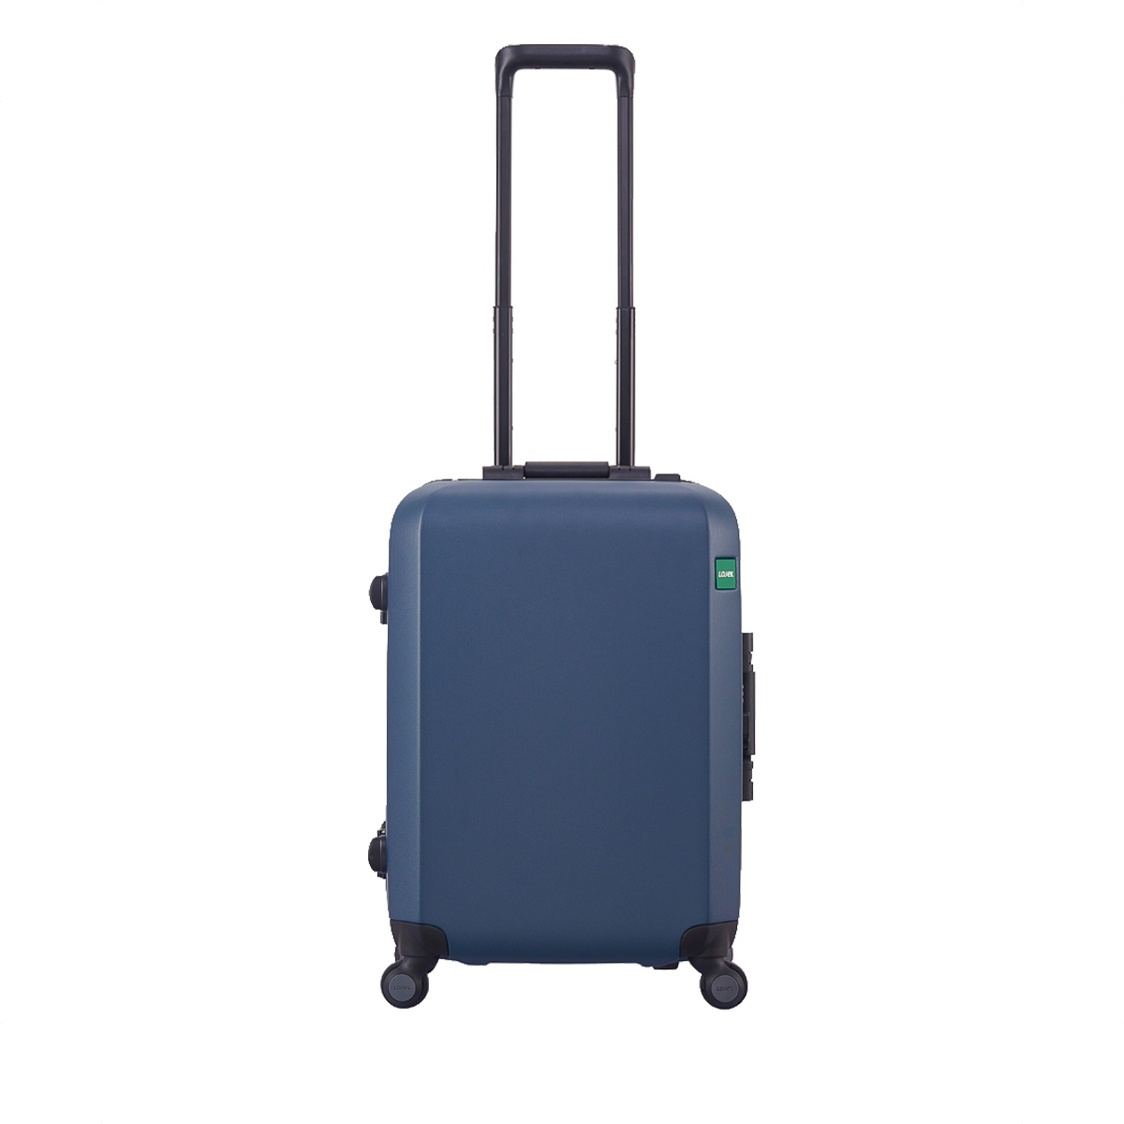 Rando Frame Luggage - Steel Blue